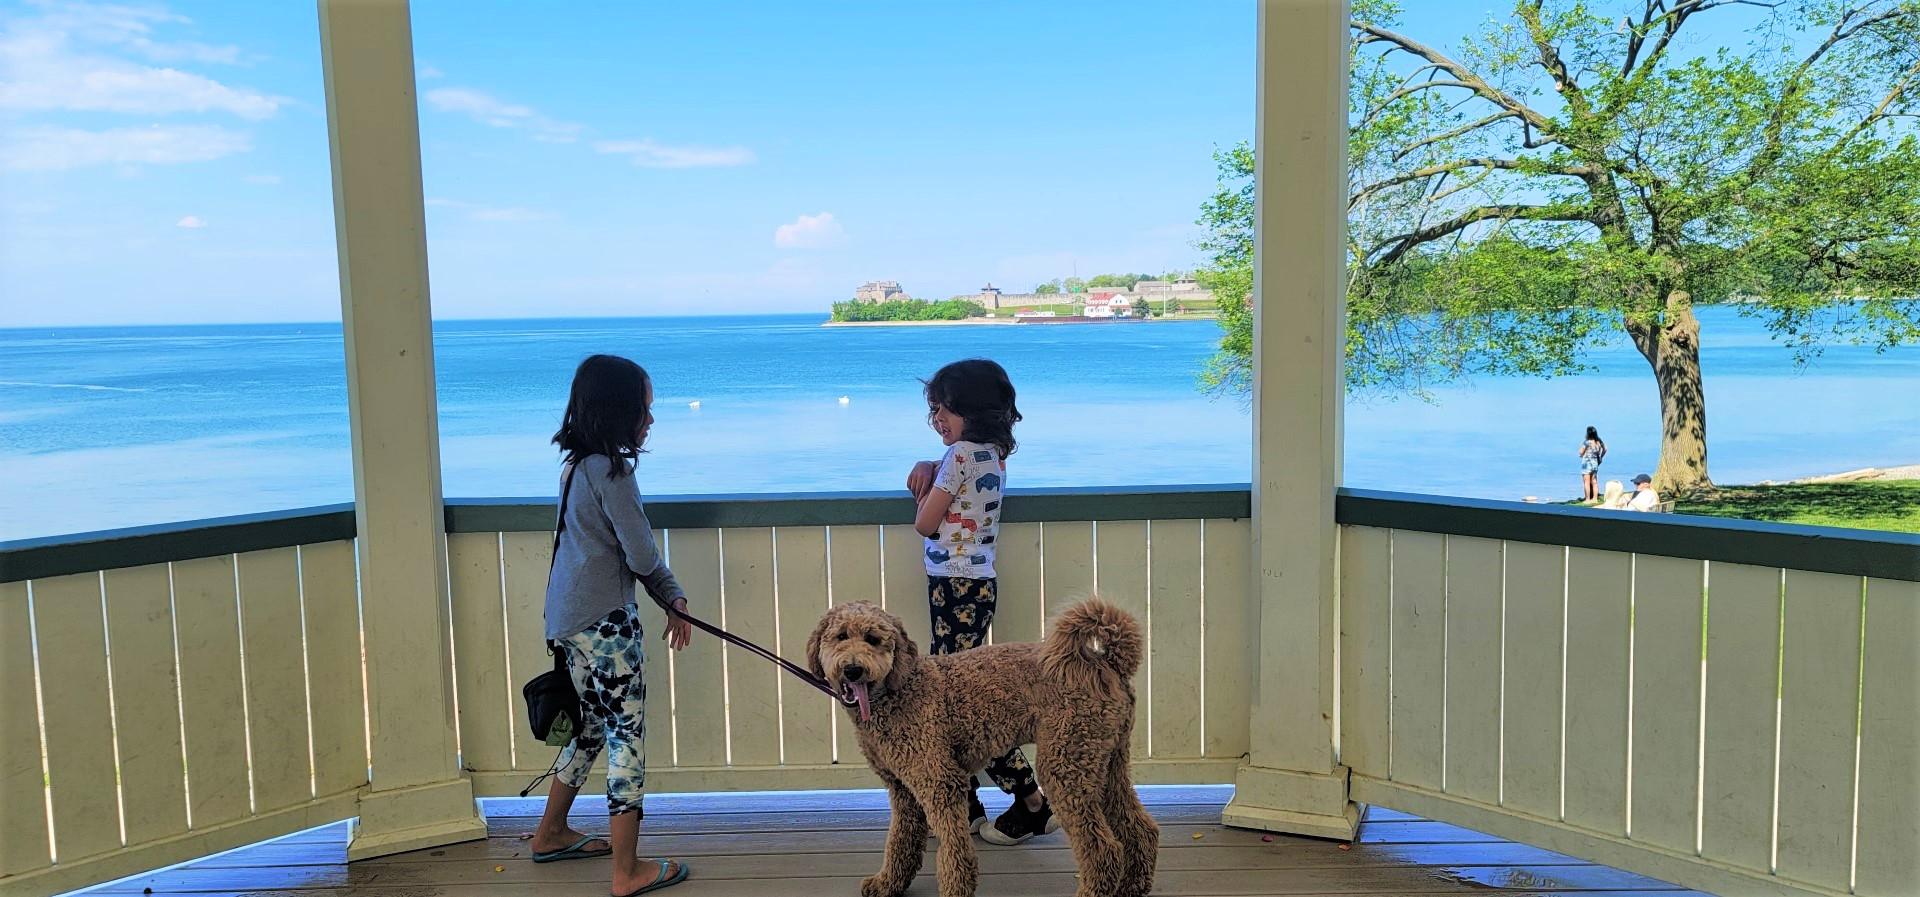 kids and dog in a gazebo over looking Niagara River